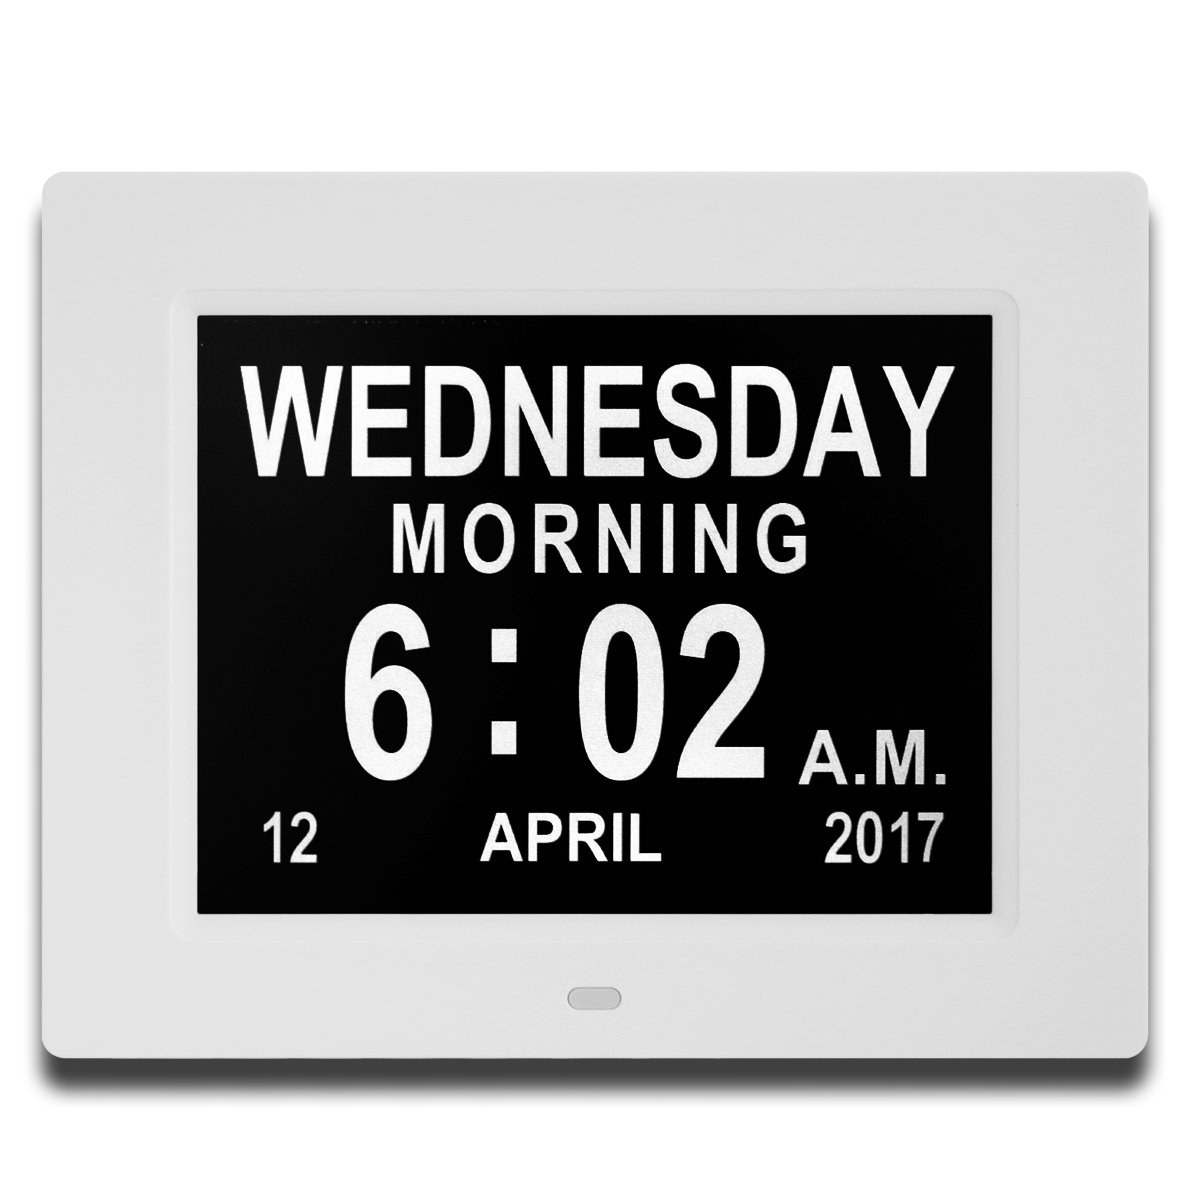 Kaylocheer Updated Version Digital Wall Clock- Alarm clocks- Kitchen LED Clock- Extra Large Electronic Calendar Day Clock with Battery Backup- Large Numbers (White)